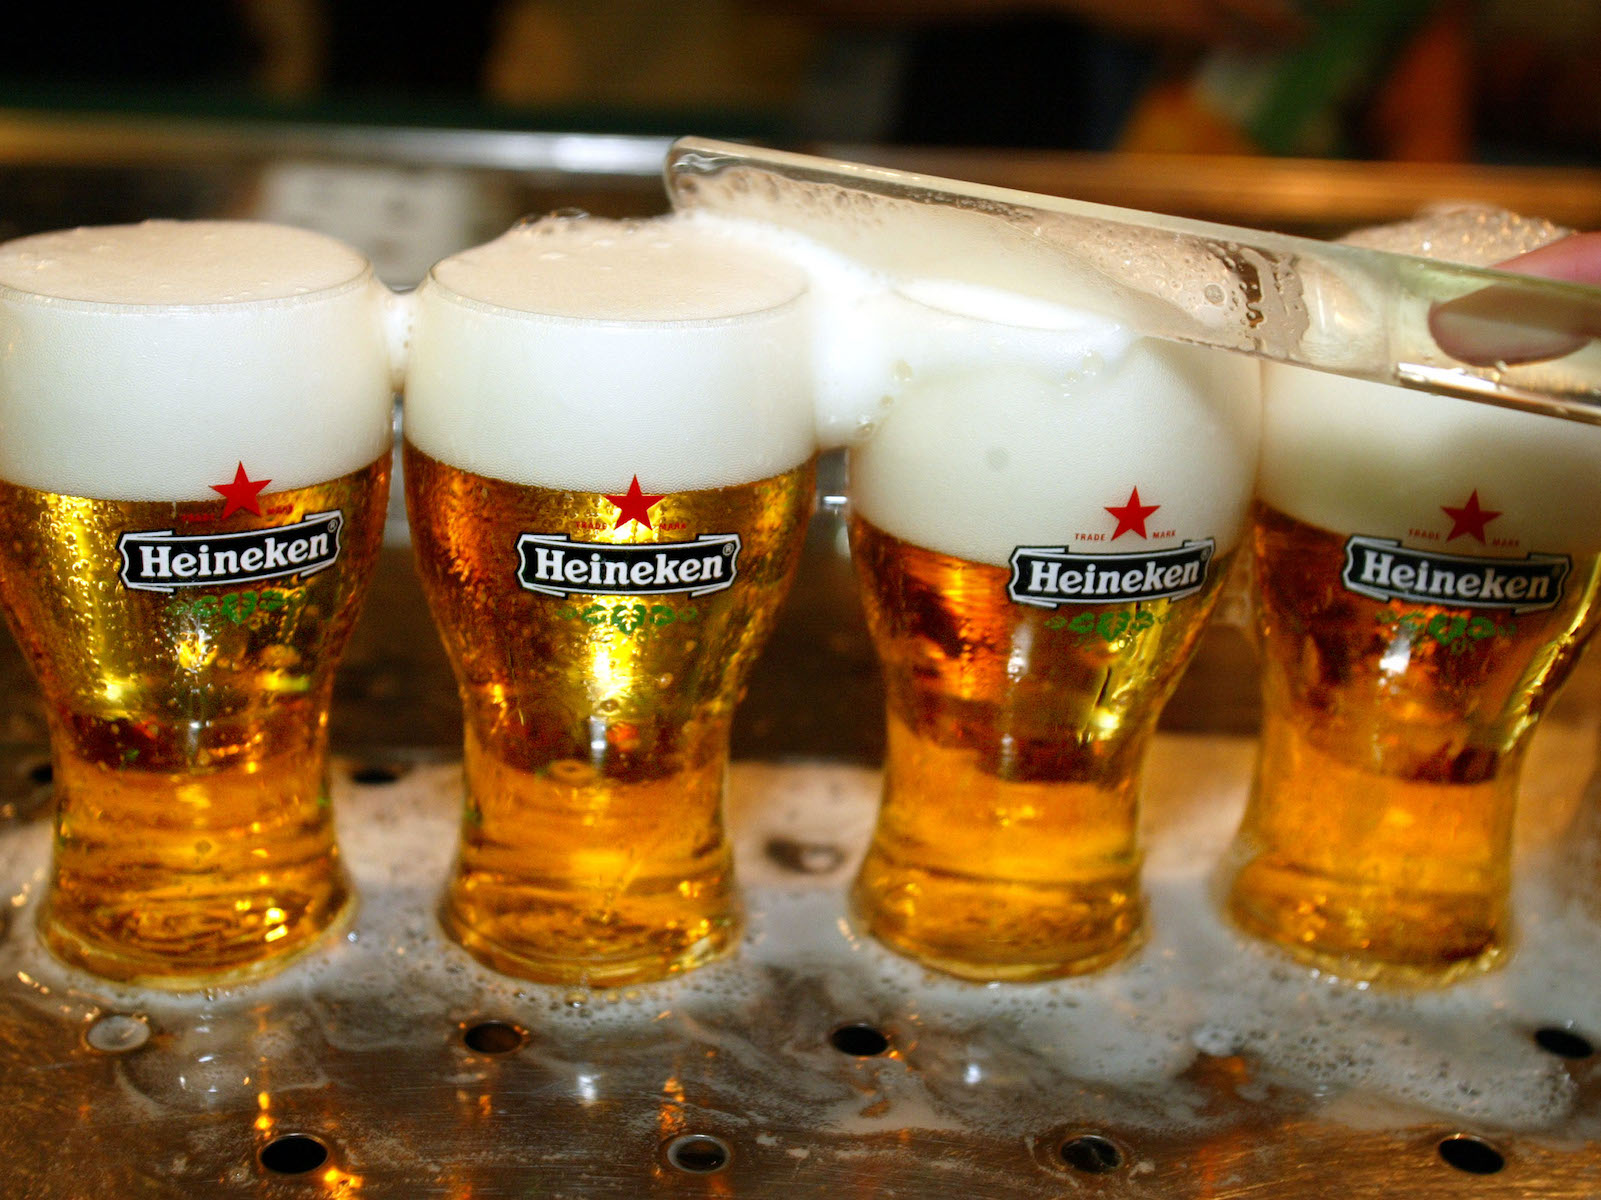 abinbev-heineken-draft-FT-BLOG0419.jpg